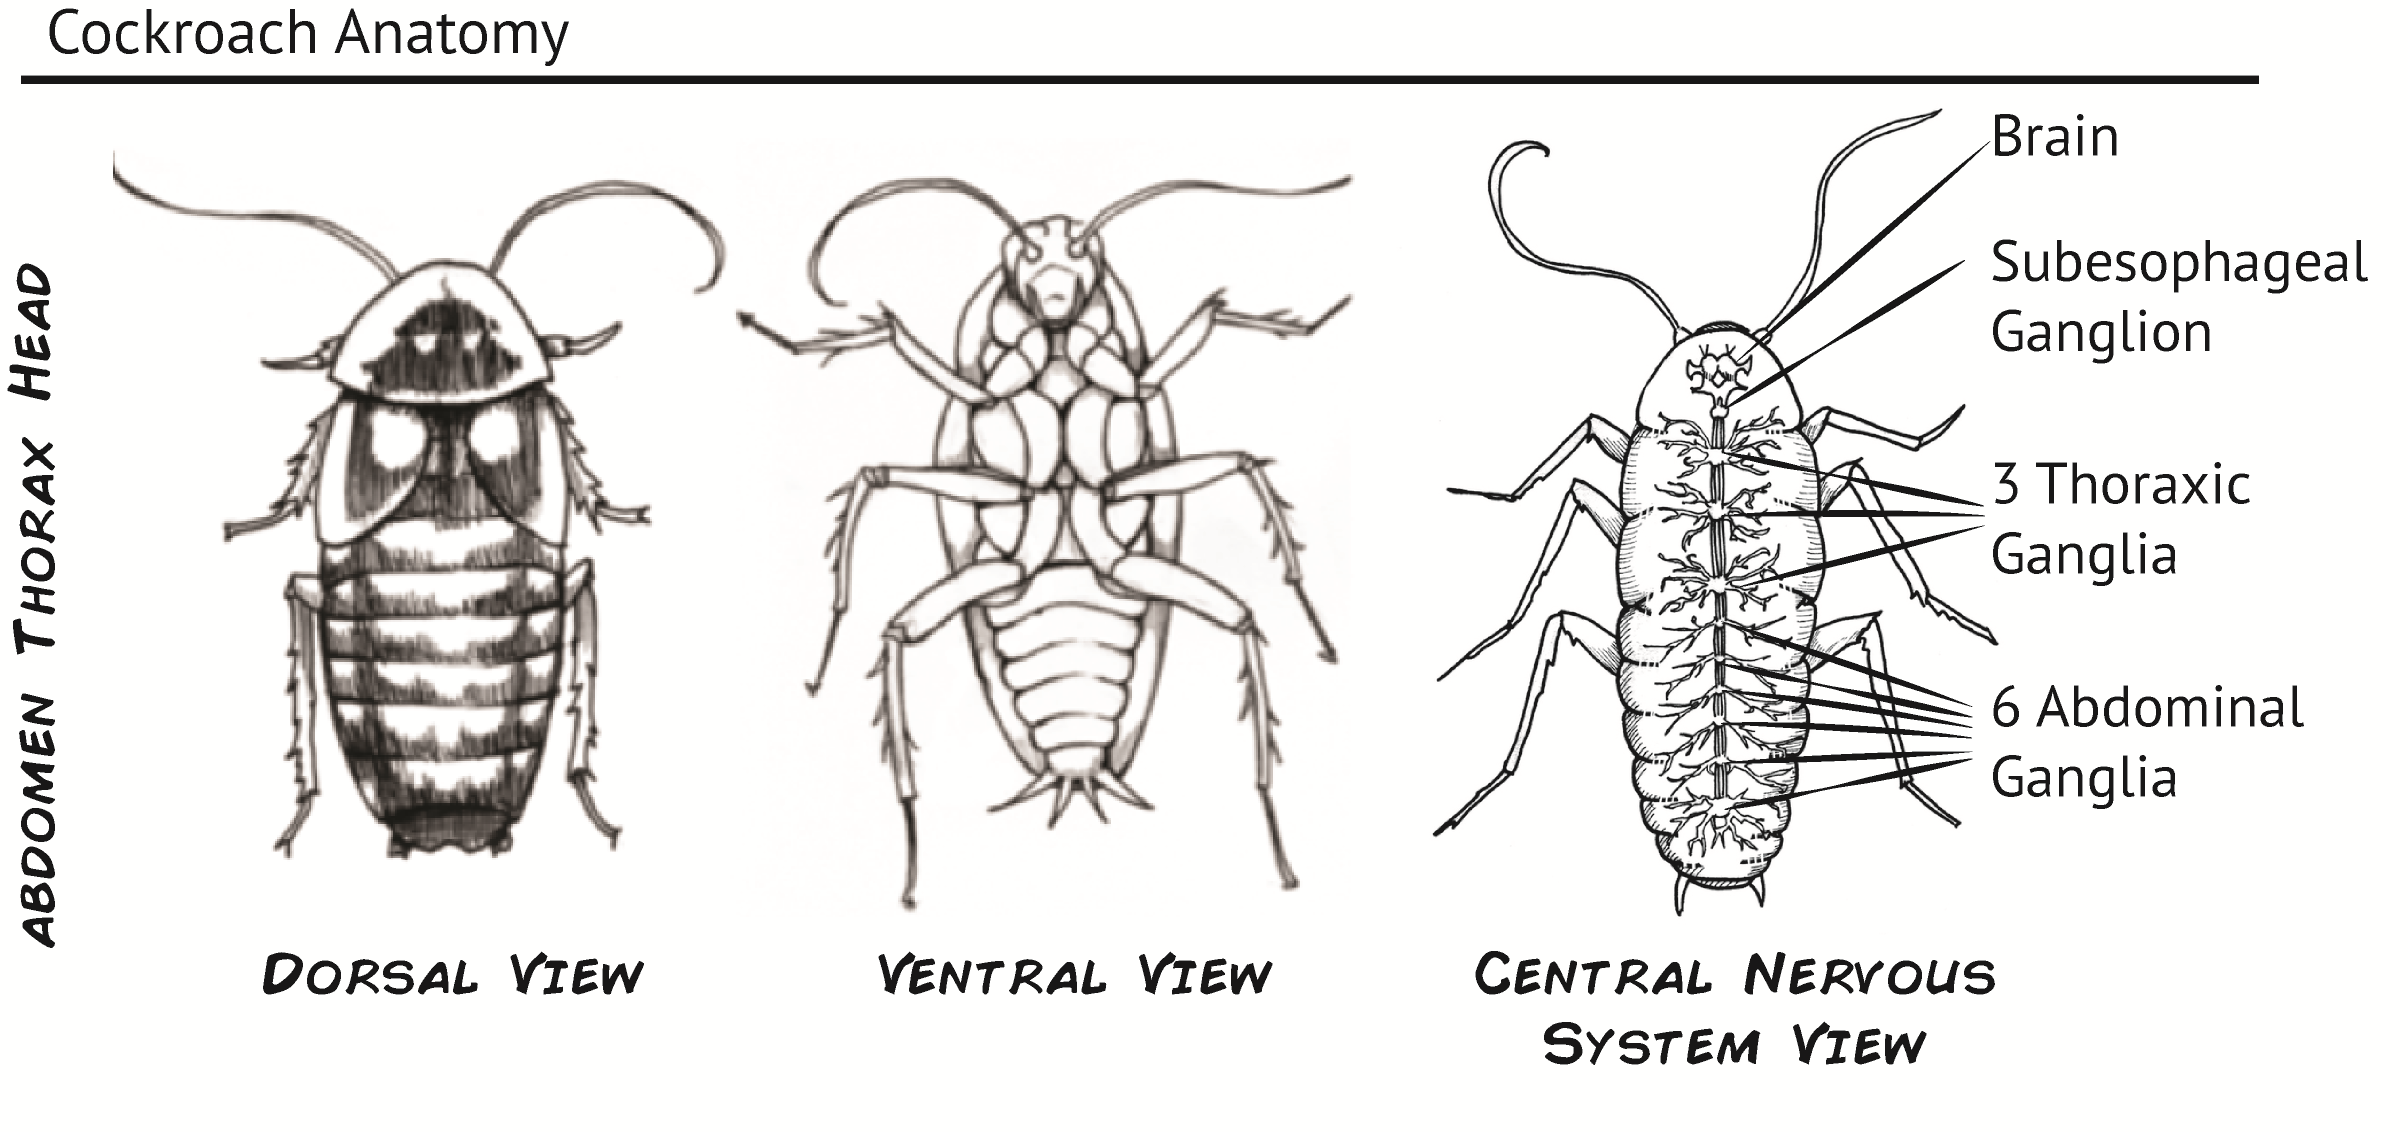 animal physiology lab report mechanoreceptors of cockroach Animal physiology lab report mechanoreceptors in the leg which are responsible in detecting signals from mechanical stimulation such as touch one function of.